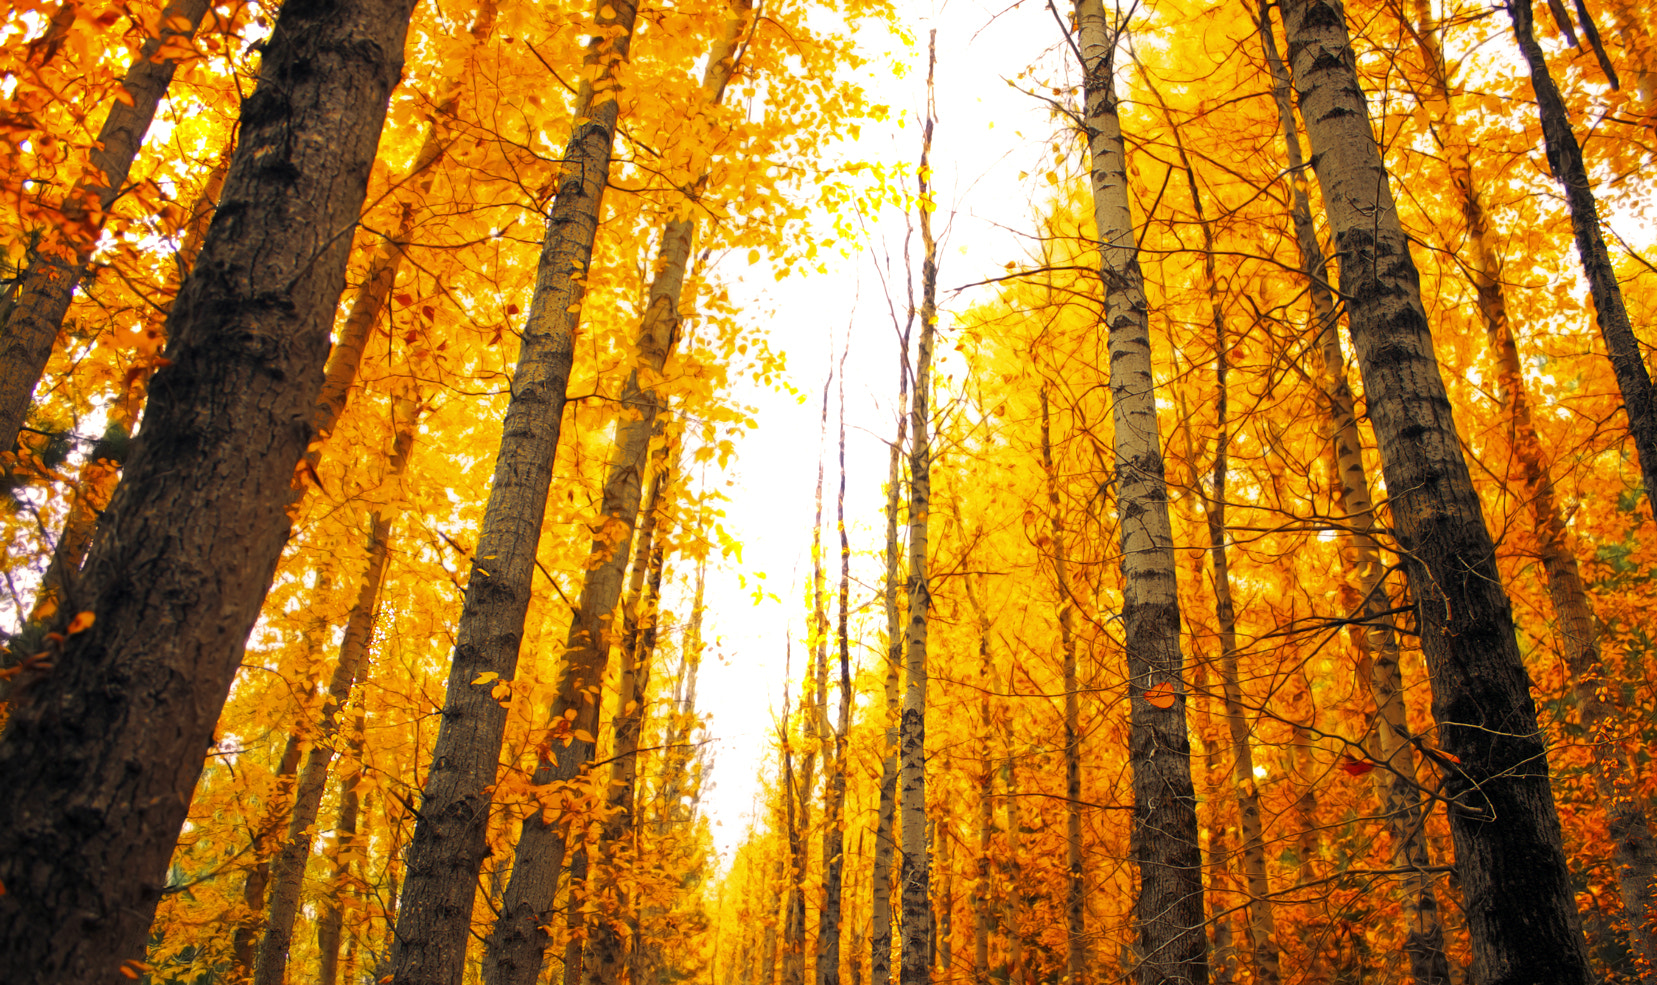 Photograph Autumn Is On Its Way || THE YELLOW FOREST by Rhys Pope on 500px